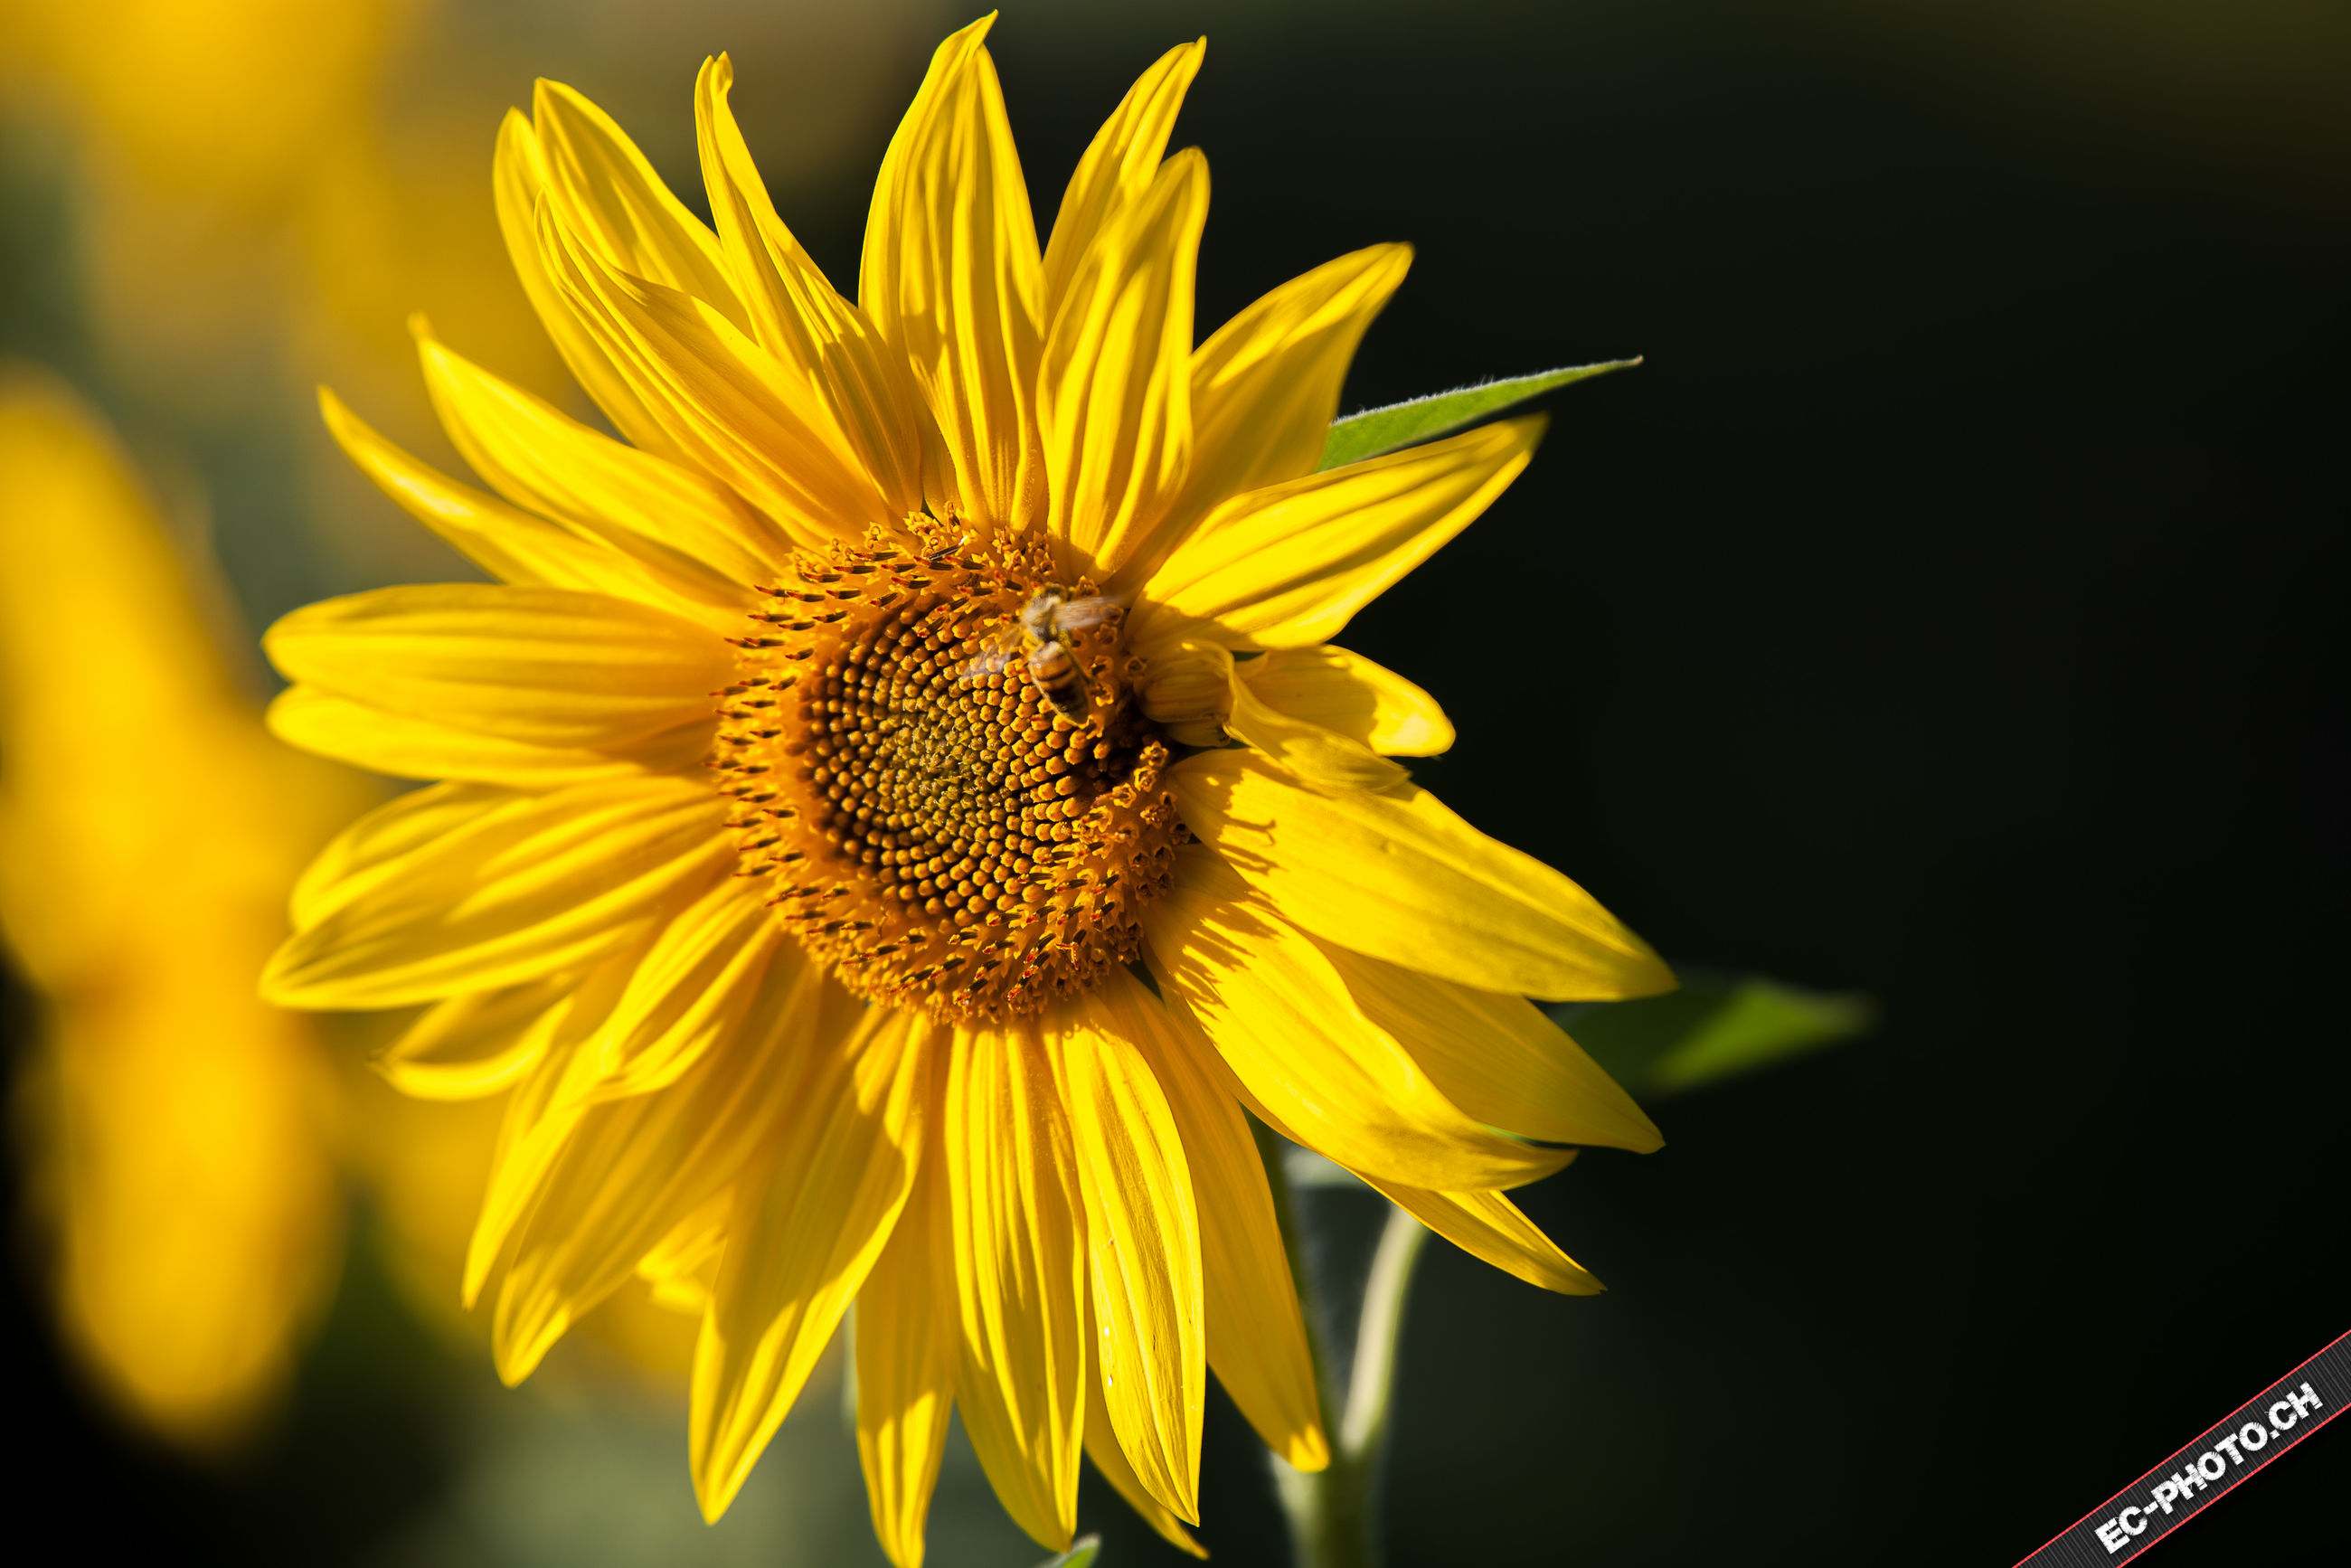 flower, freshness, fragility, petal, flower head, yellow, insect, one animal, animal themes, animals in the wild, wildlife, beauty in nature, close-up, single flower, growth, springtime, plant, pollination, sunflower, bee, nature, blossom, vibrant color, in bloom, focus on foreground, pollen, daisy, perching, day, honey bee, symbiotic relationship, botany, zoology, blooming